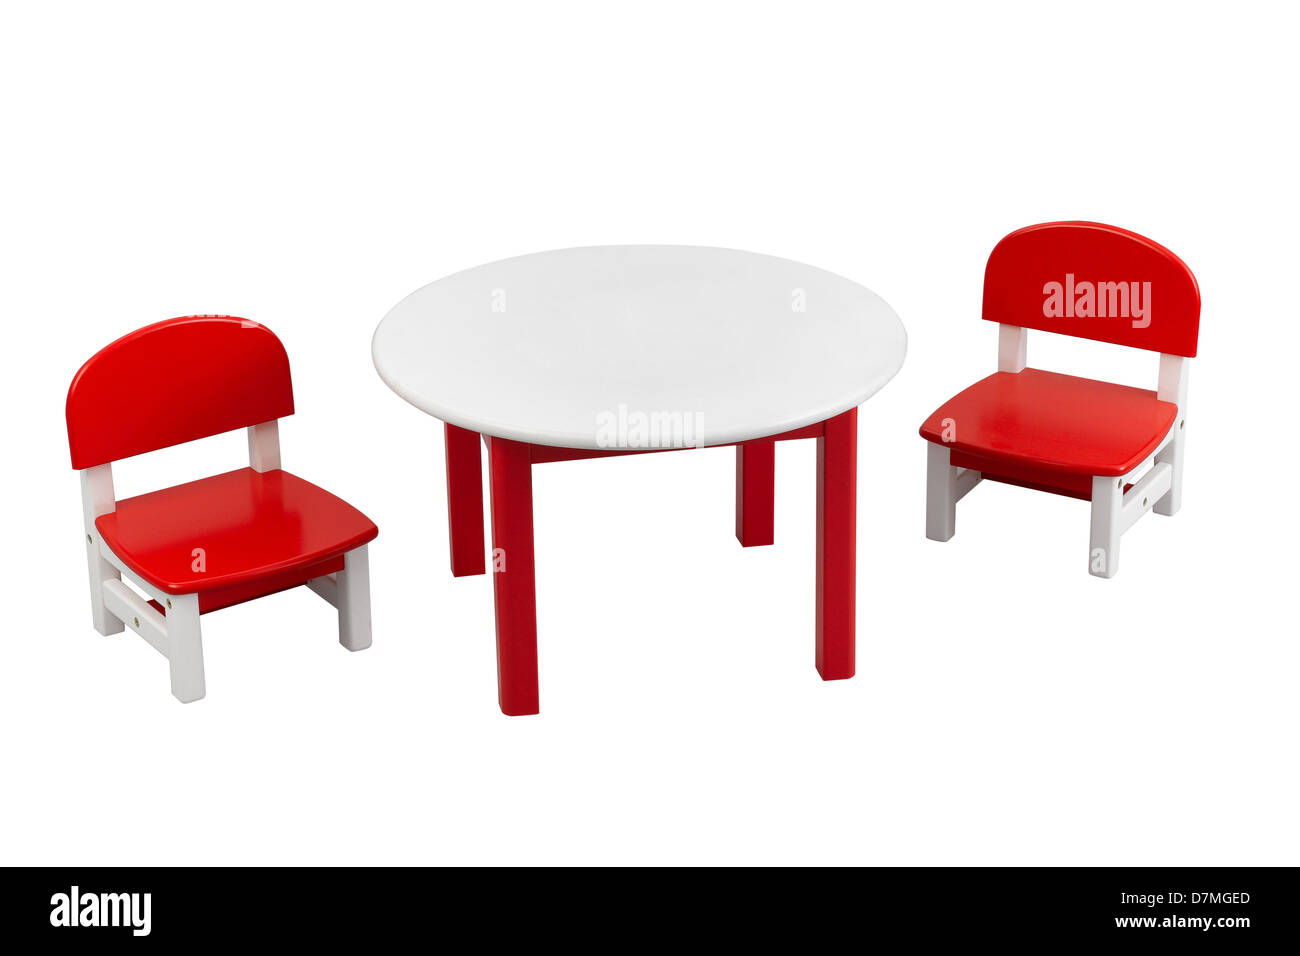 Miraculous Small Desk And Chairs For Child Good For Home Use Or Inzonedesignstudio Interior Chair Design Inzonedesignstudiocom